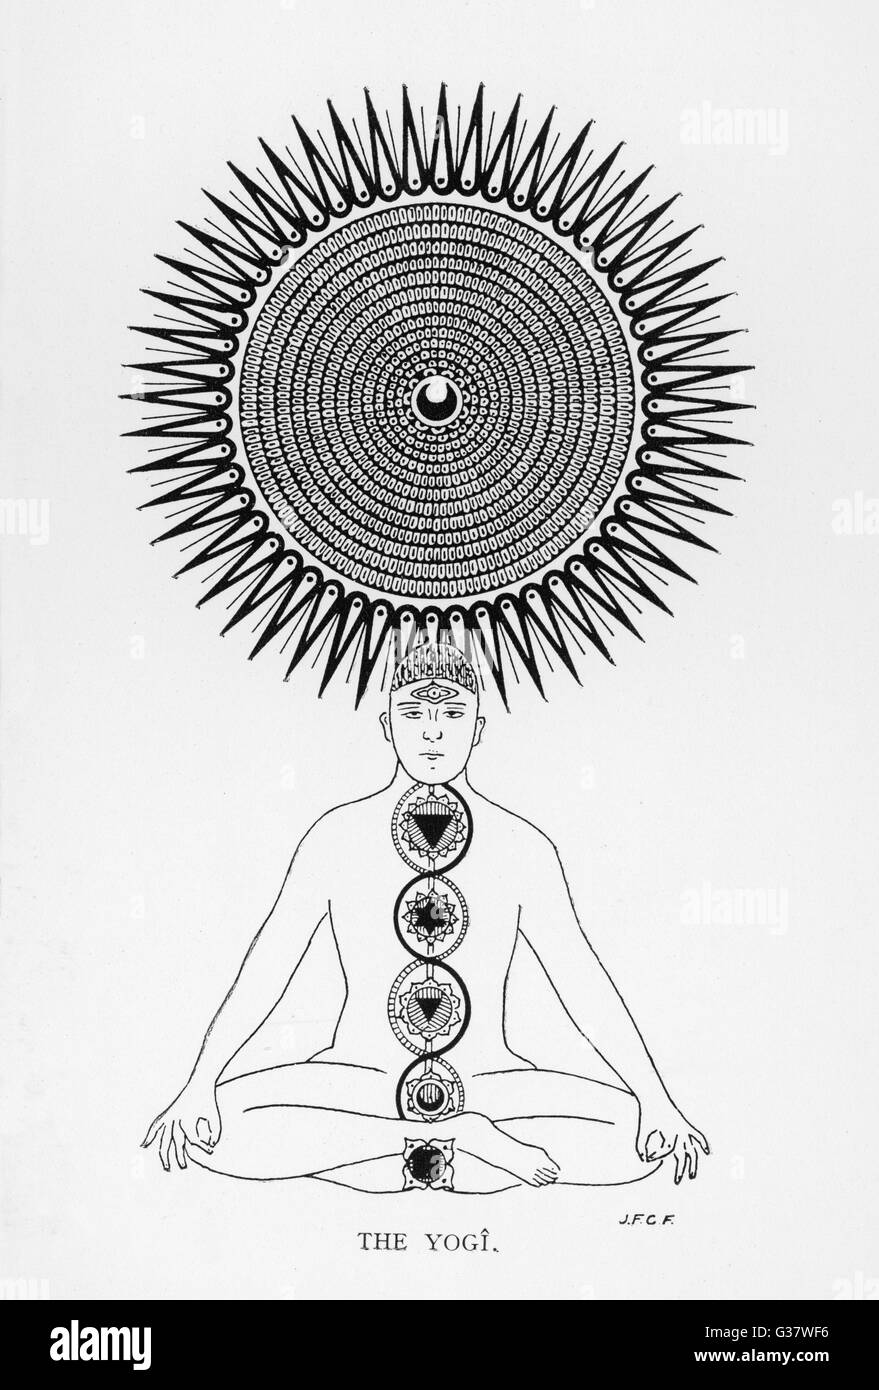 Schematic representation of  the yogi performing his  spiritual exercise        Date: 1933 - Stock Image